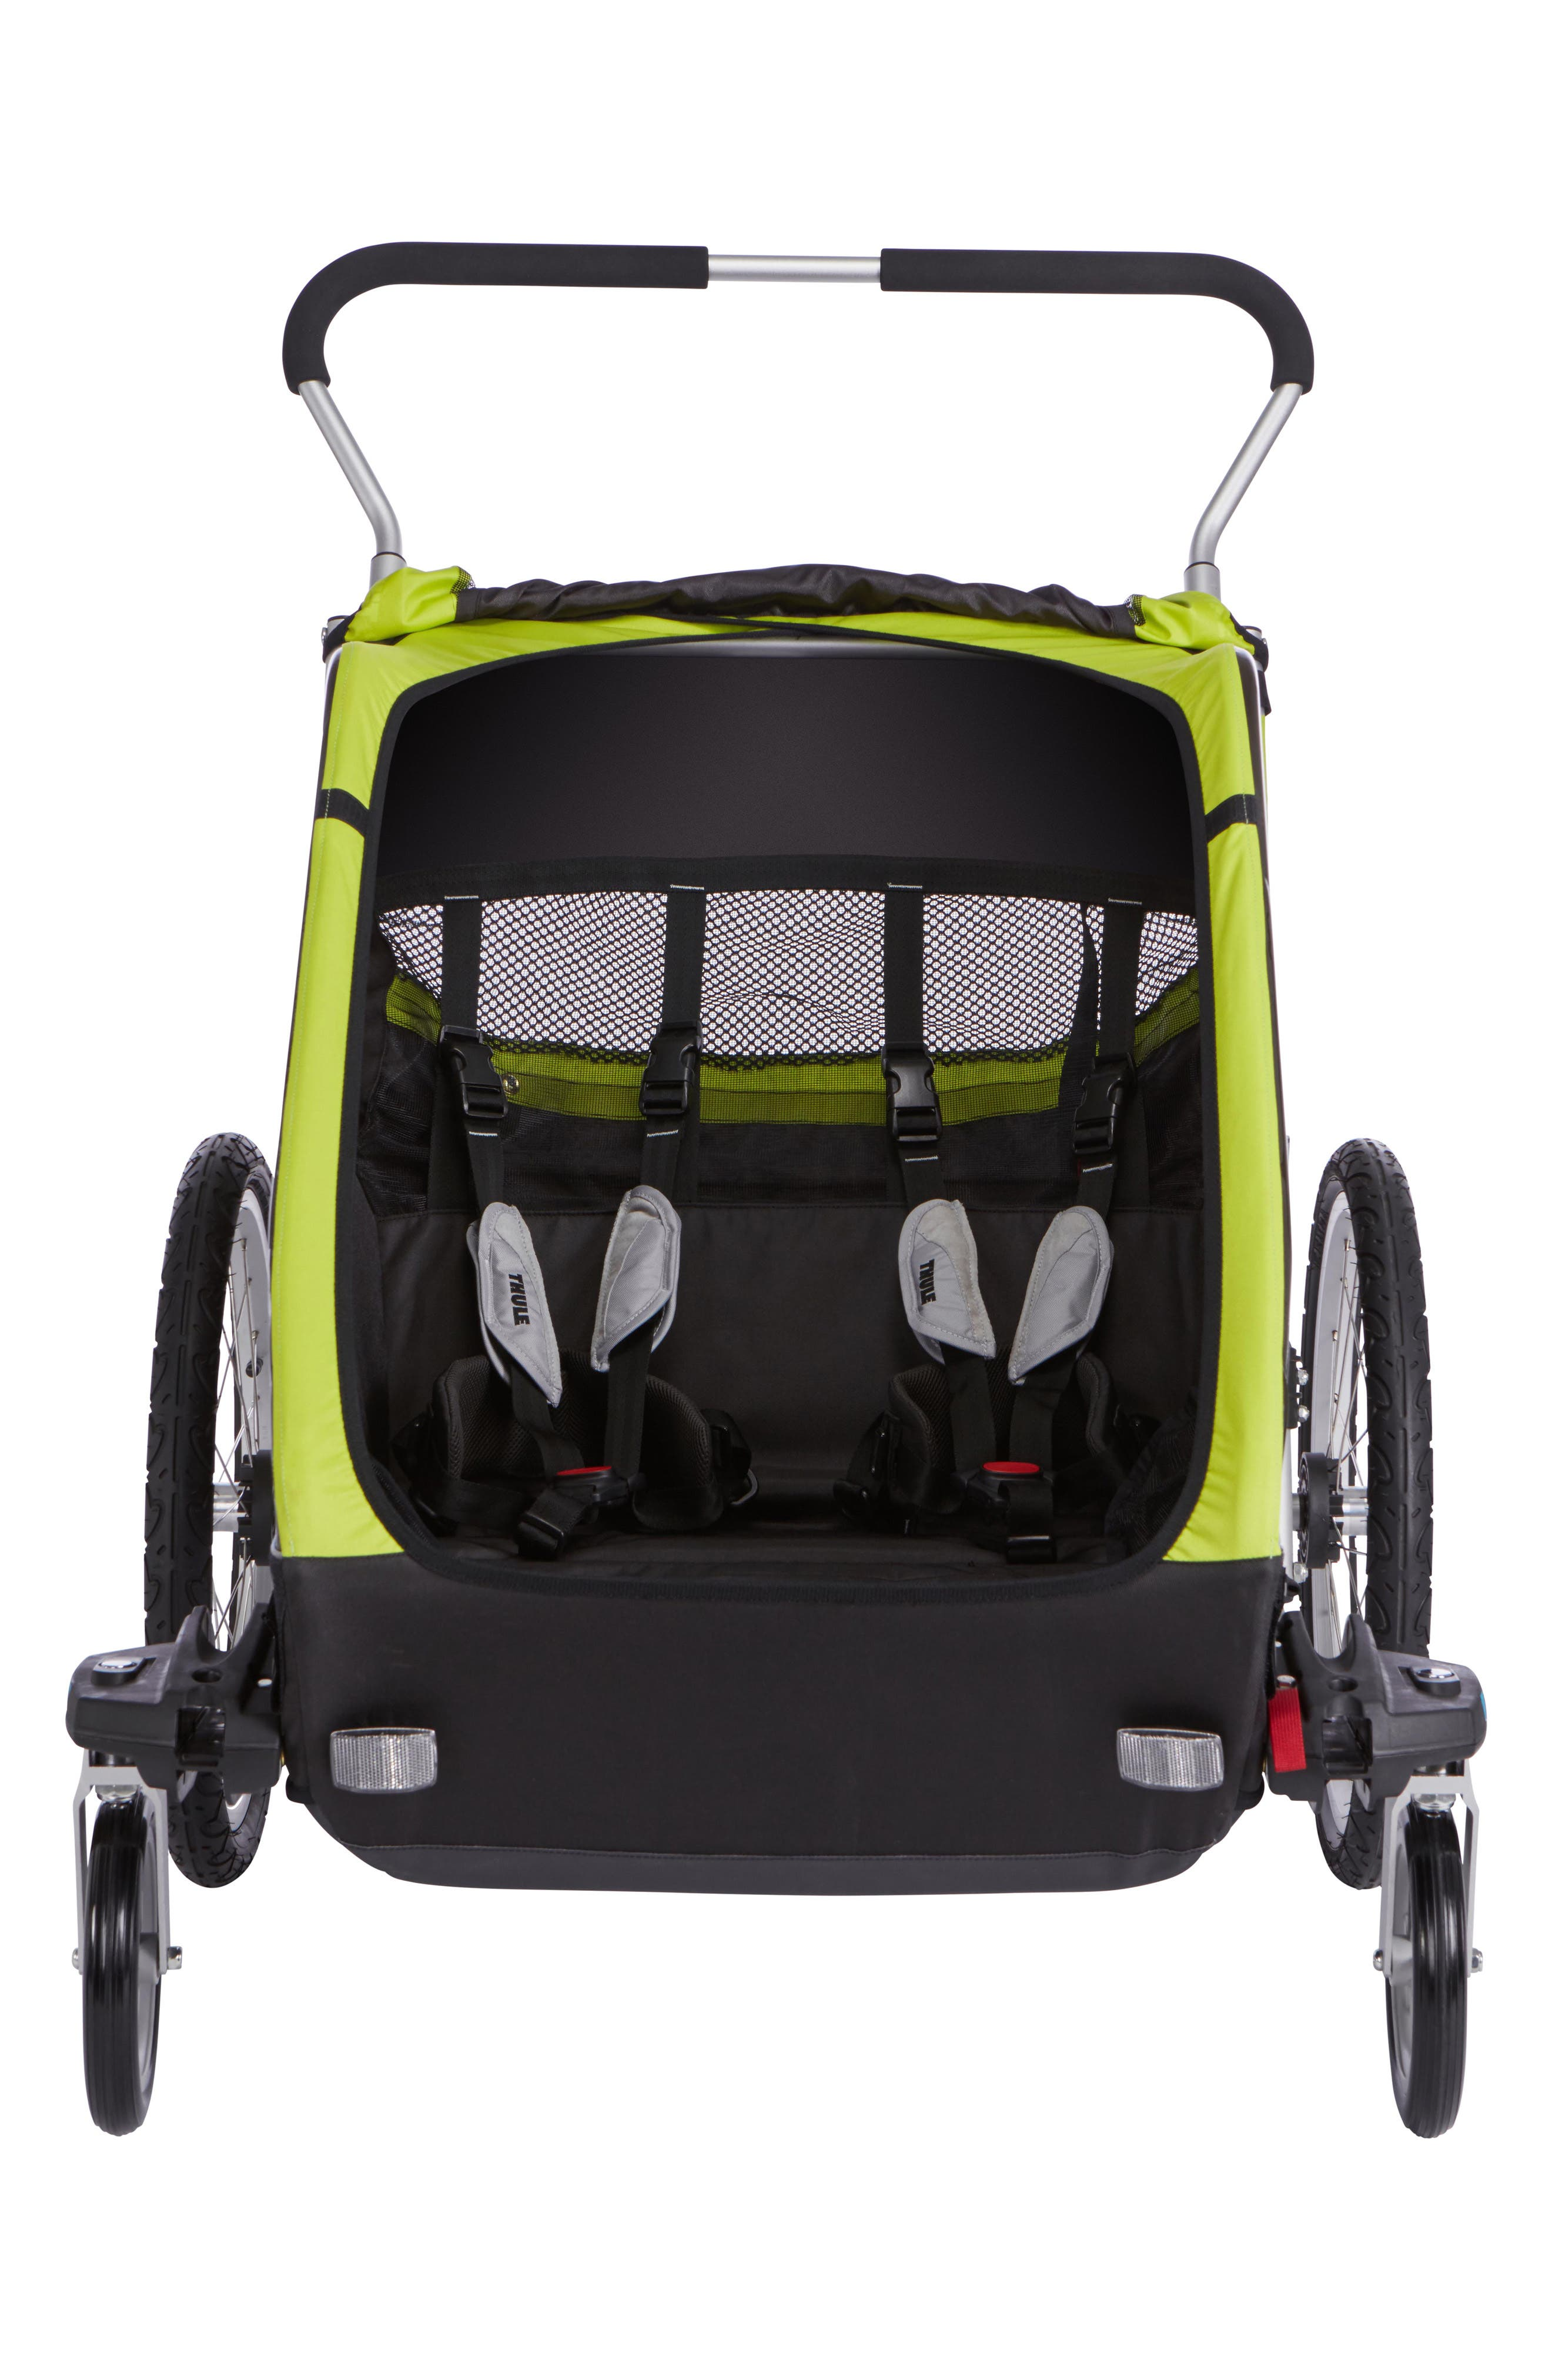 Chariot Cheetah XT 2 Multisport Double Cycle Trailer/Stroller,                             Alternate thumbnail 4, color,                             Chartreuse